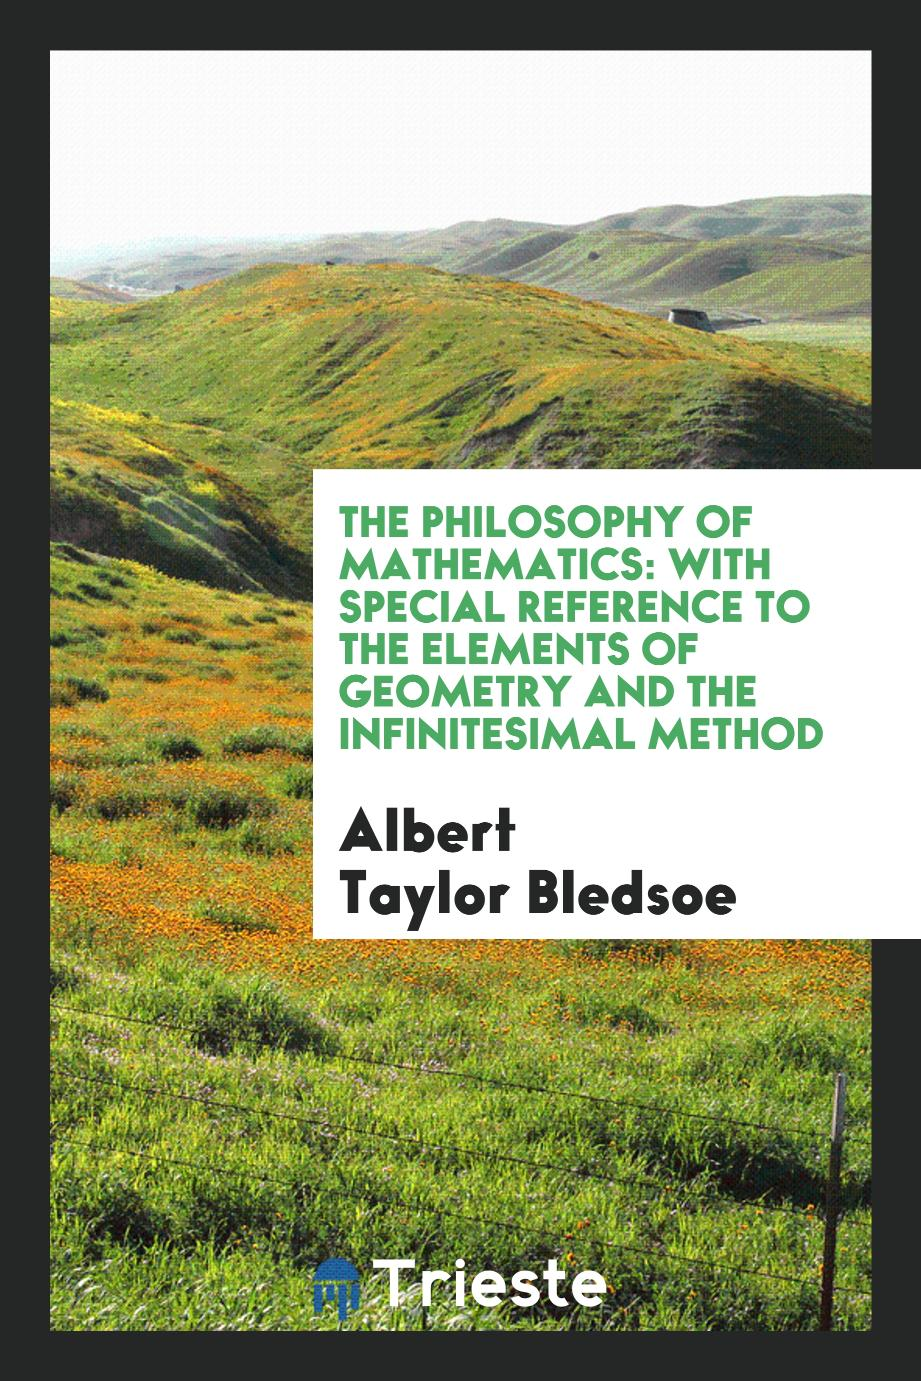 The Philosophy of Mathematics: With Special Reference to the Elements of Geometry and the Infinitesimal Method